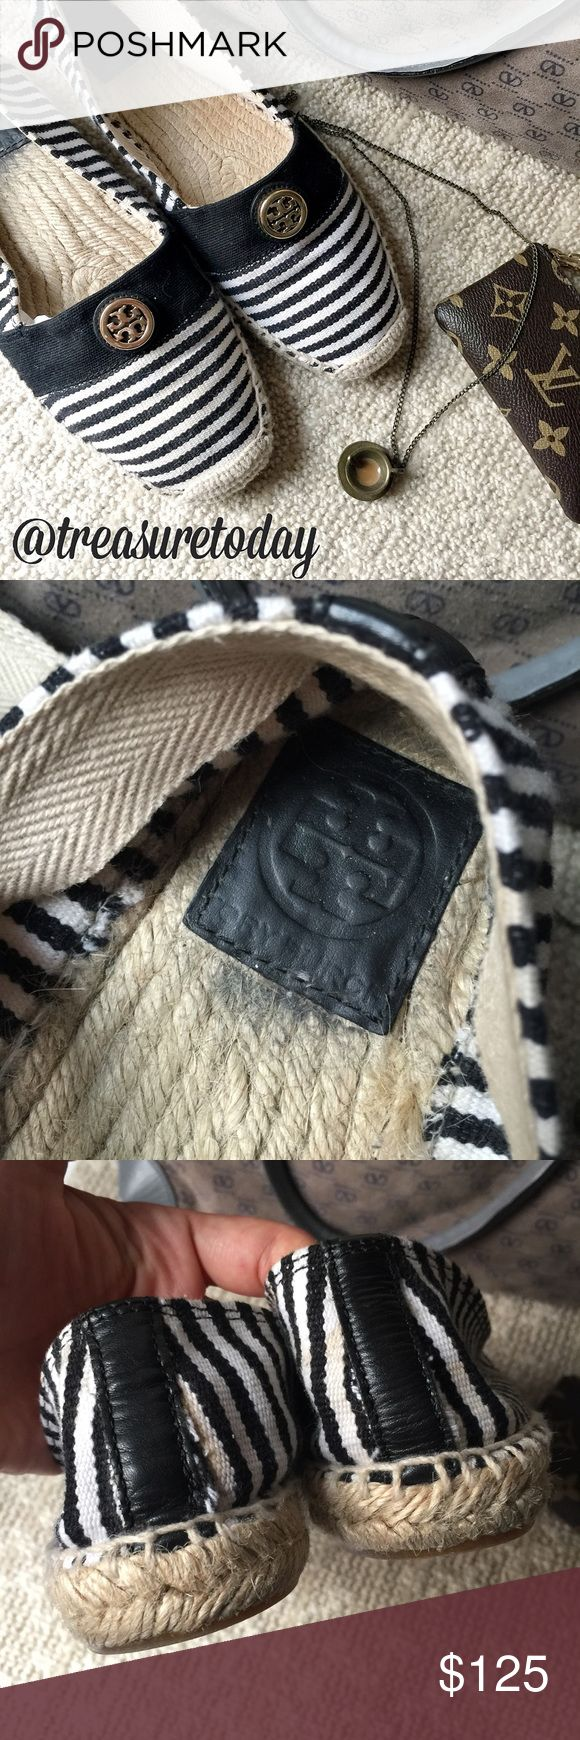 🎉HOST PICK 8/21🎉 Tory Burch Striped Espadrilles Authentic Tory canvas shoes in great condition, used only a few times. Lots of life left, no box. Feel free to ask any question, I'm here to help! 🎉Offers welcome 🎉 Bundle 2 or more items and get %10 off instantly💕 all pictures are taken by me. Tory Burch Shoes Espadrilles